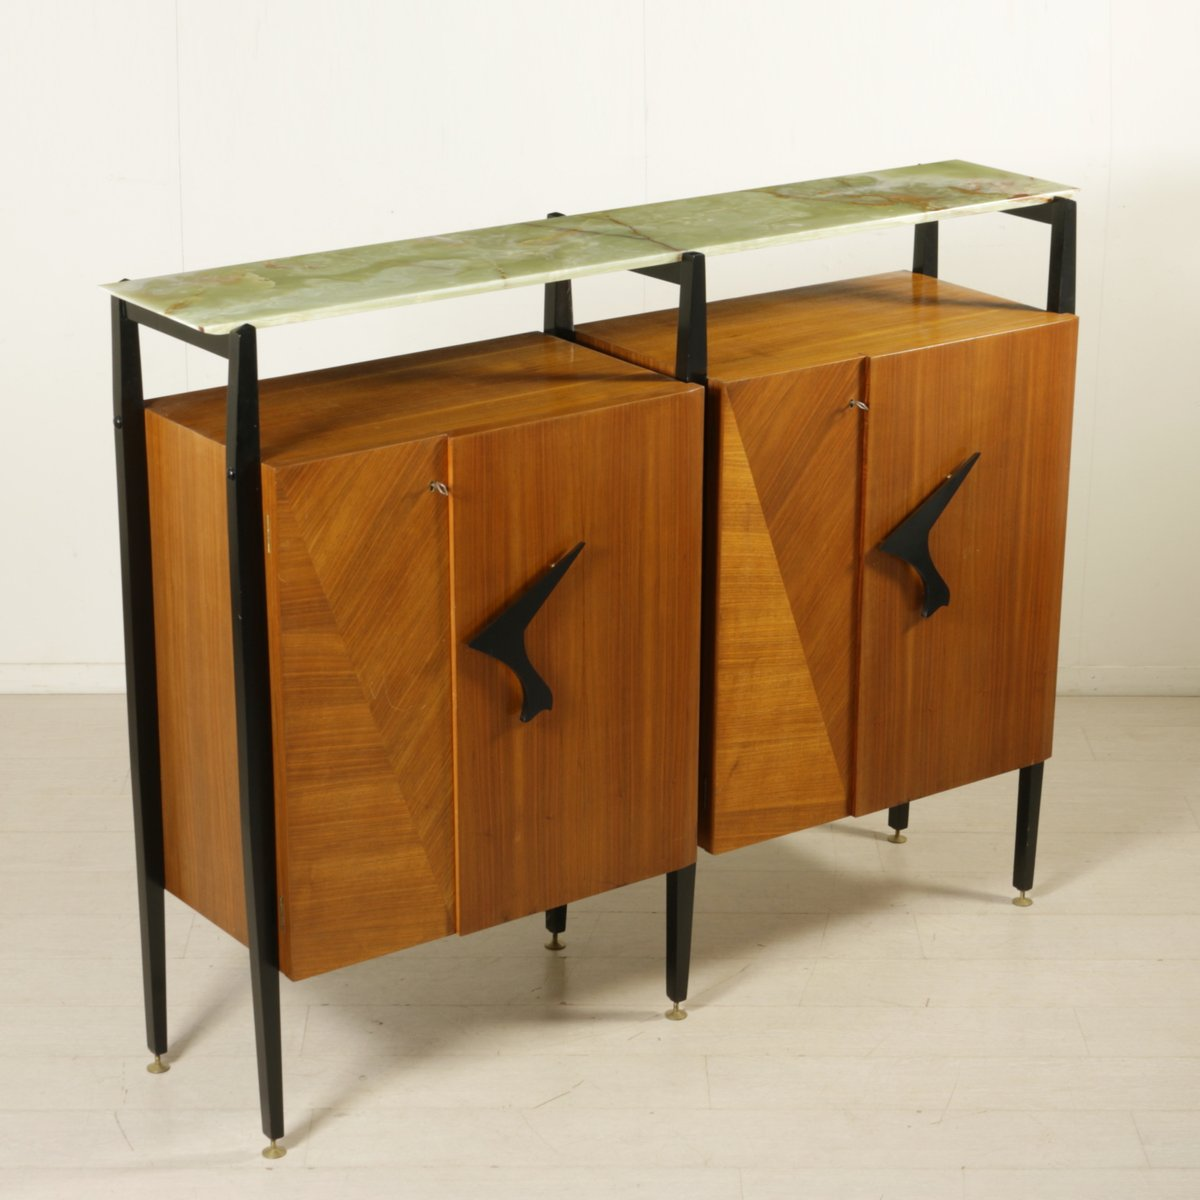 Living Room Cabinet In Maple And Mahogany Veneer 1950s For Sale At